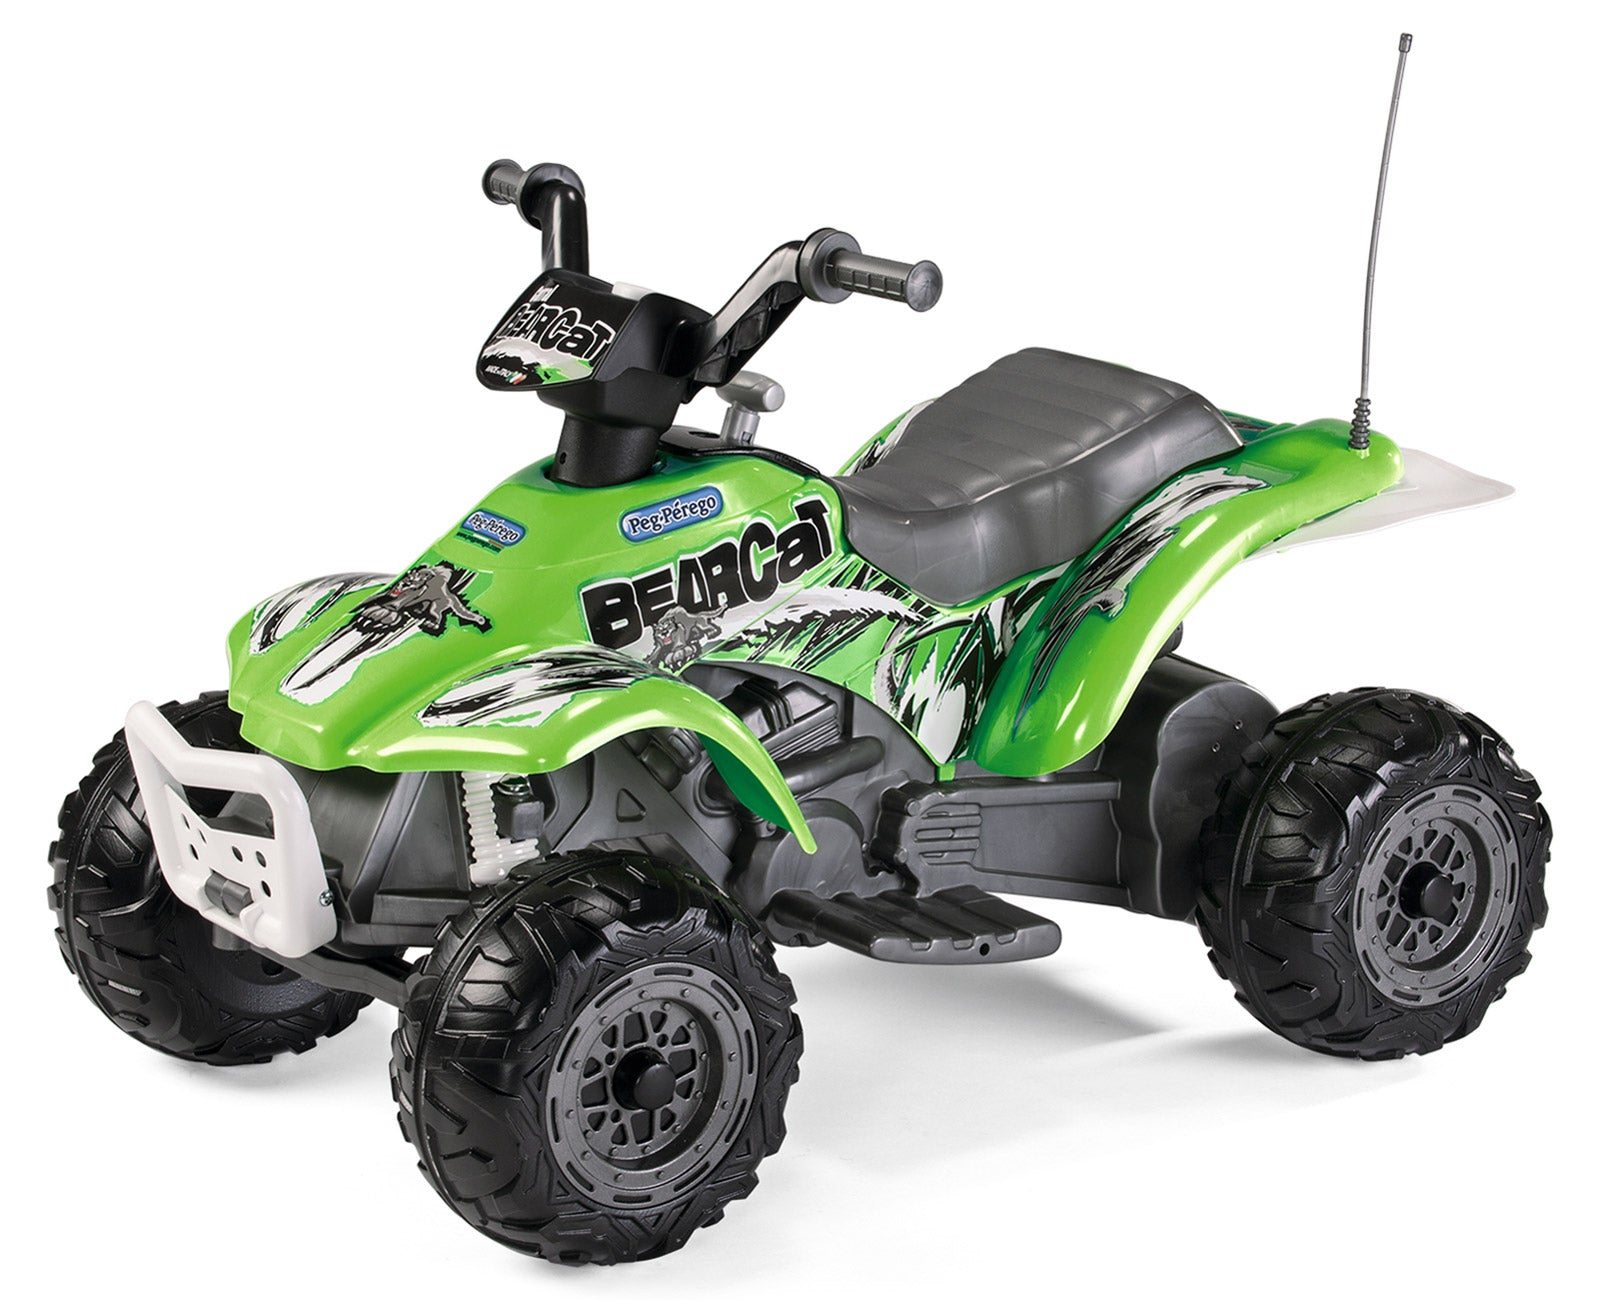 Peg Perego Corral Bearcat Quad Bike Green 6V